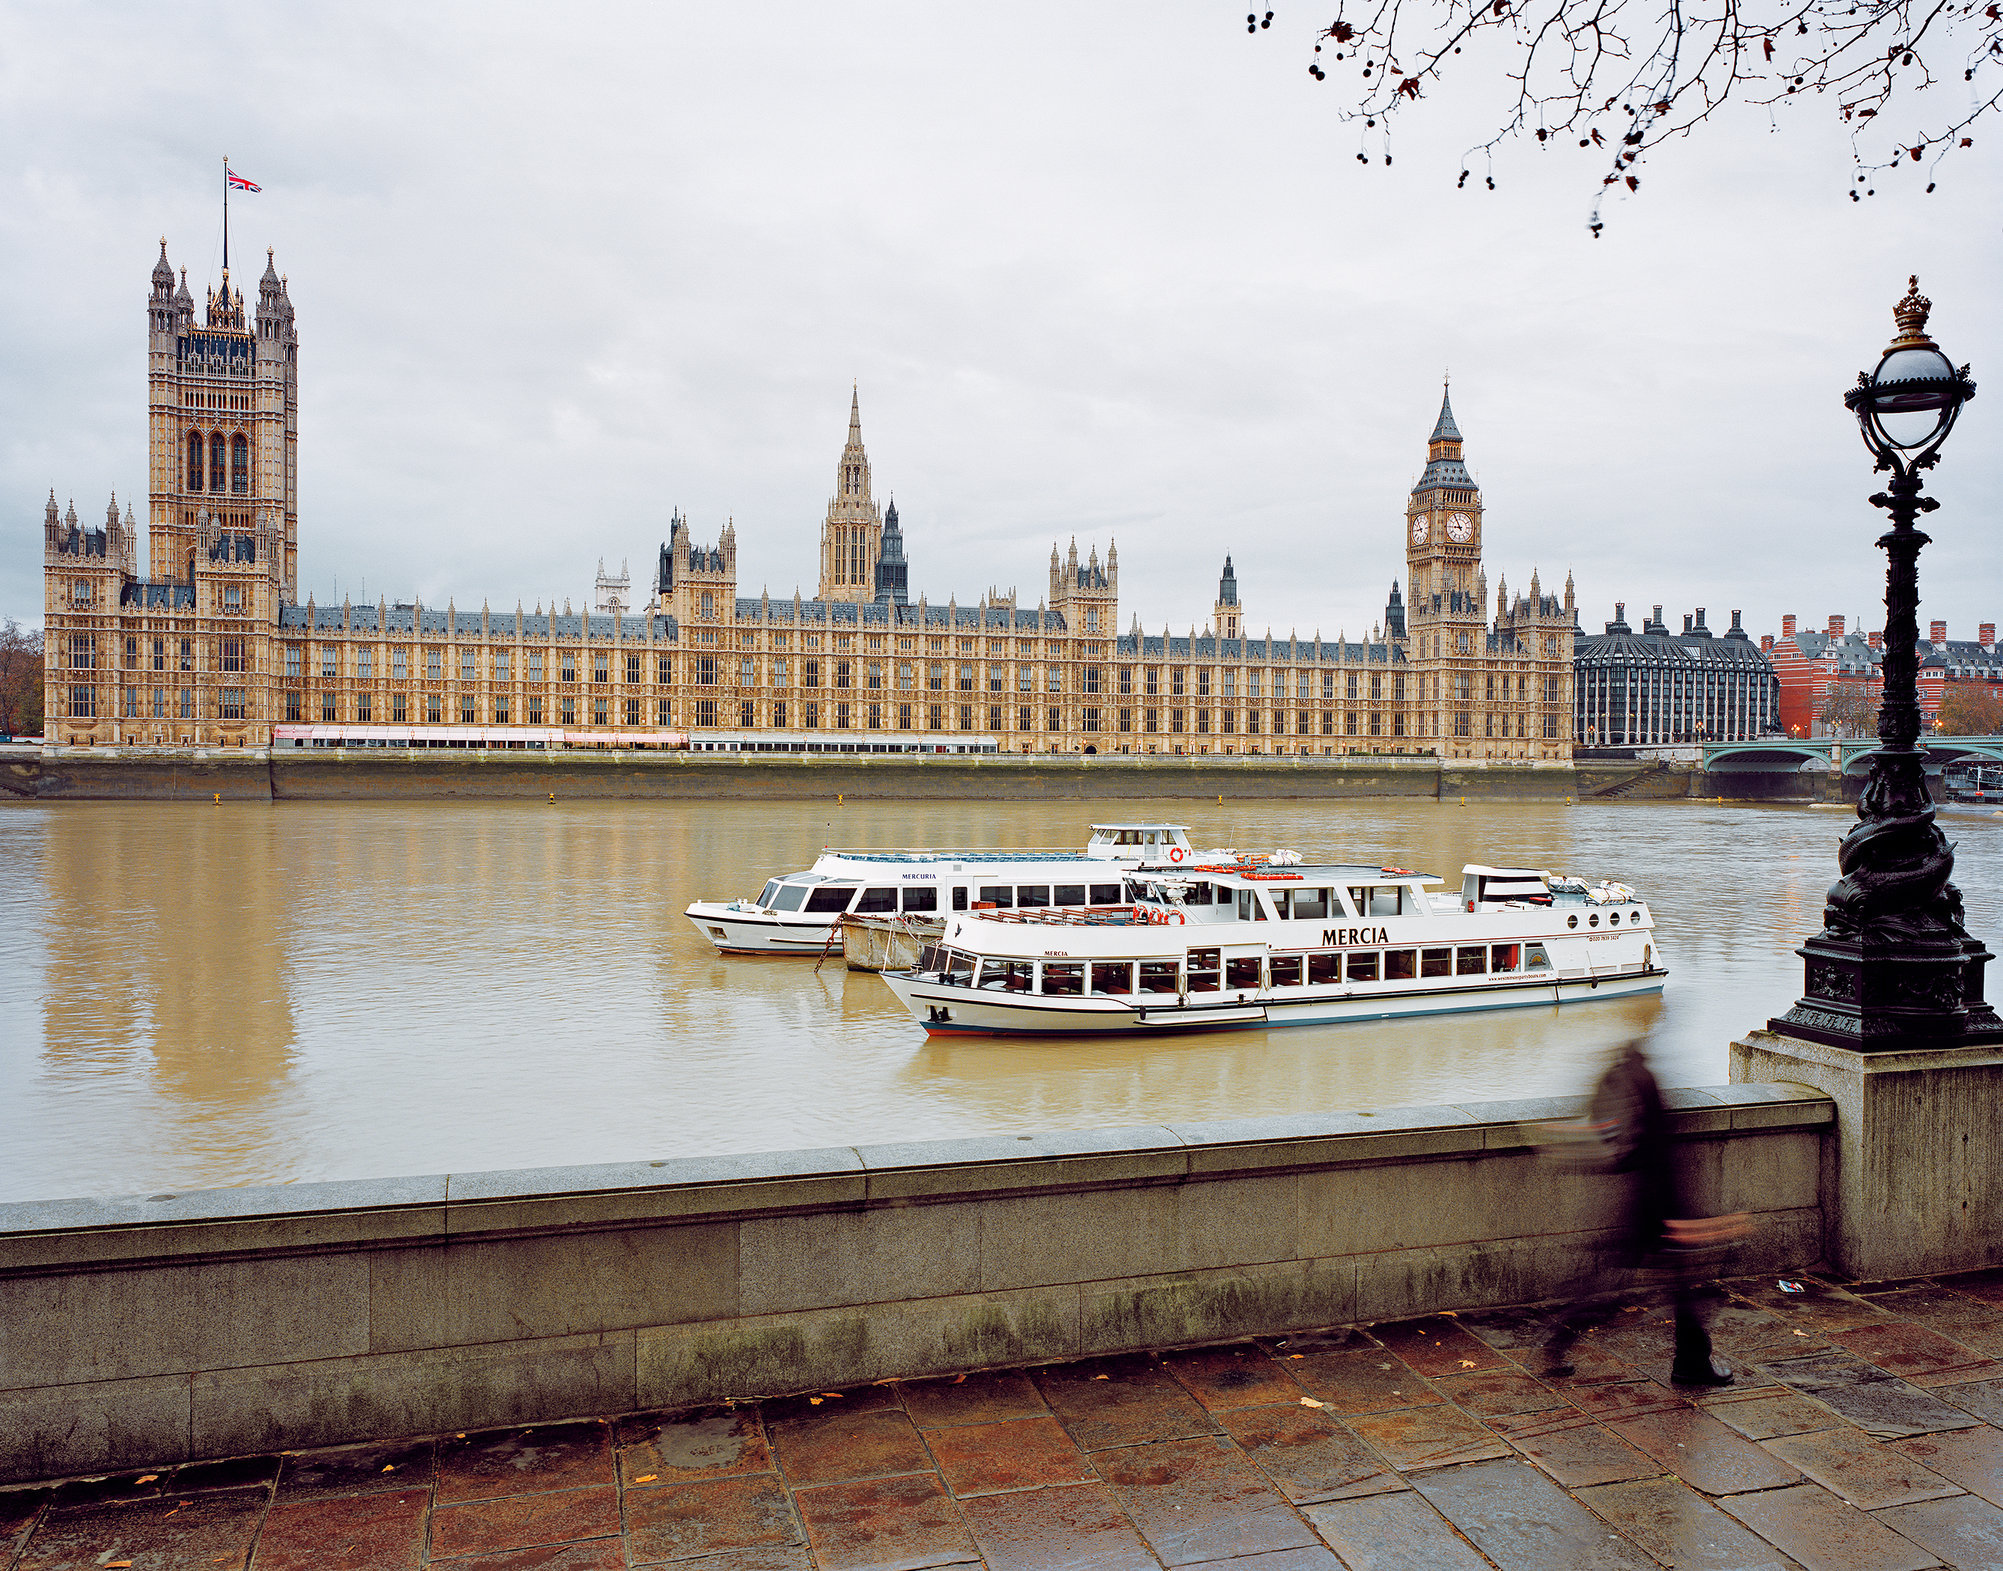 The Houses of Parliament, Westminster